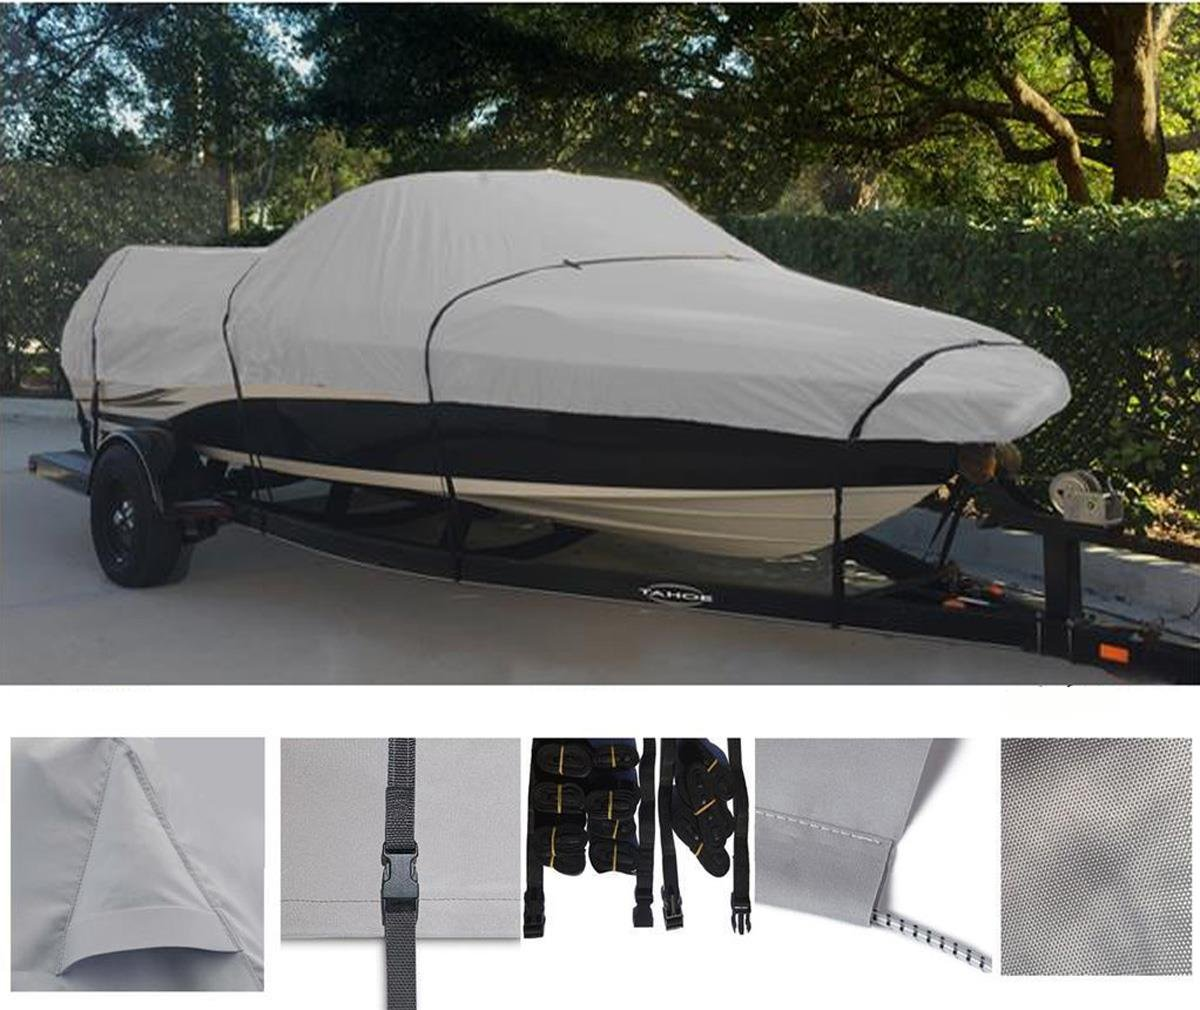 GREY, STORAGE, TRAVEL, MOORING BOAT COVER FOR NITRO - BASS TRACKER 189 SPORT 2005-2010 by SBU